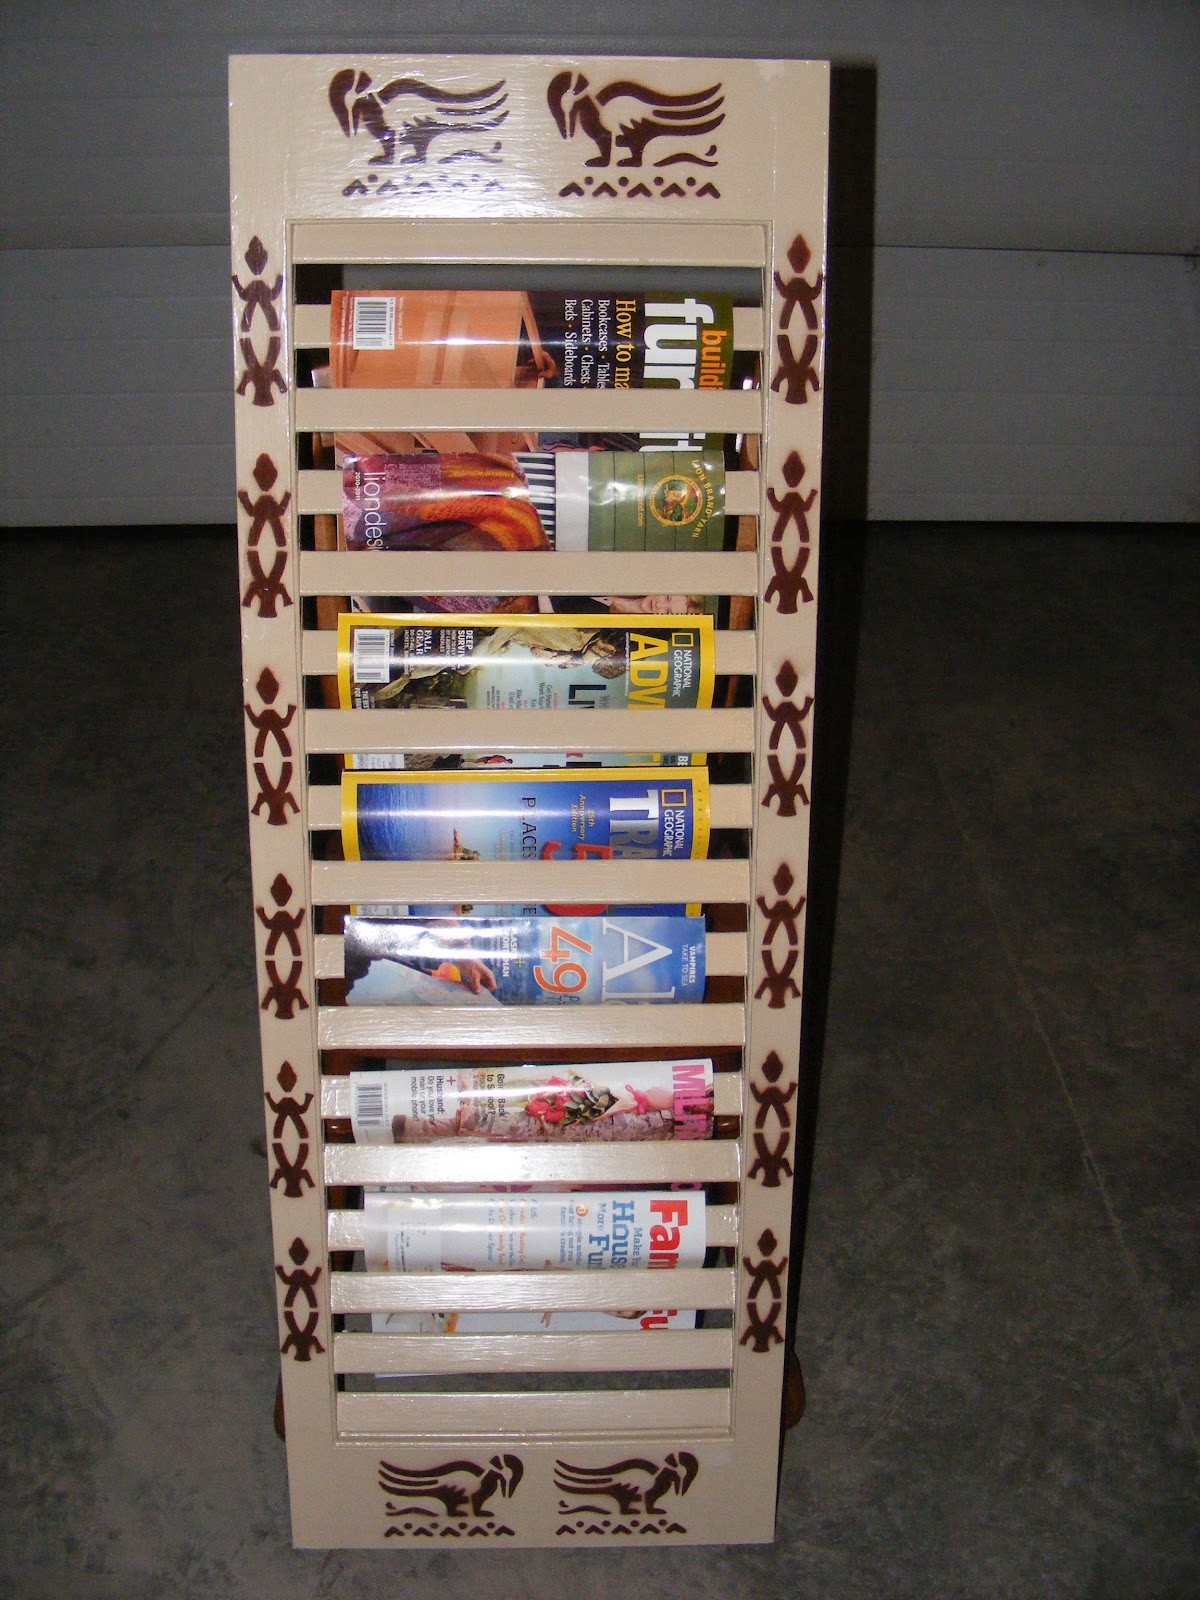 Best ideas about DIY Magazine Rack . Save or Pin Arctic Lily s Loops DIY Magazine Rack Now.